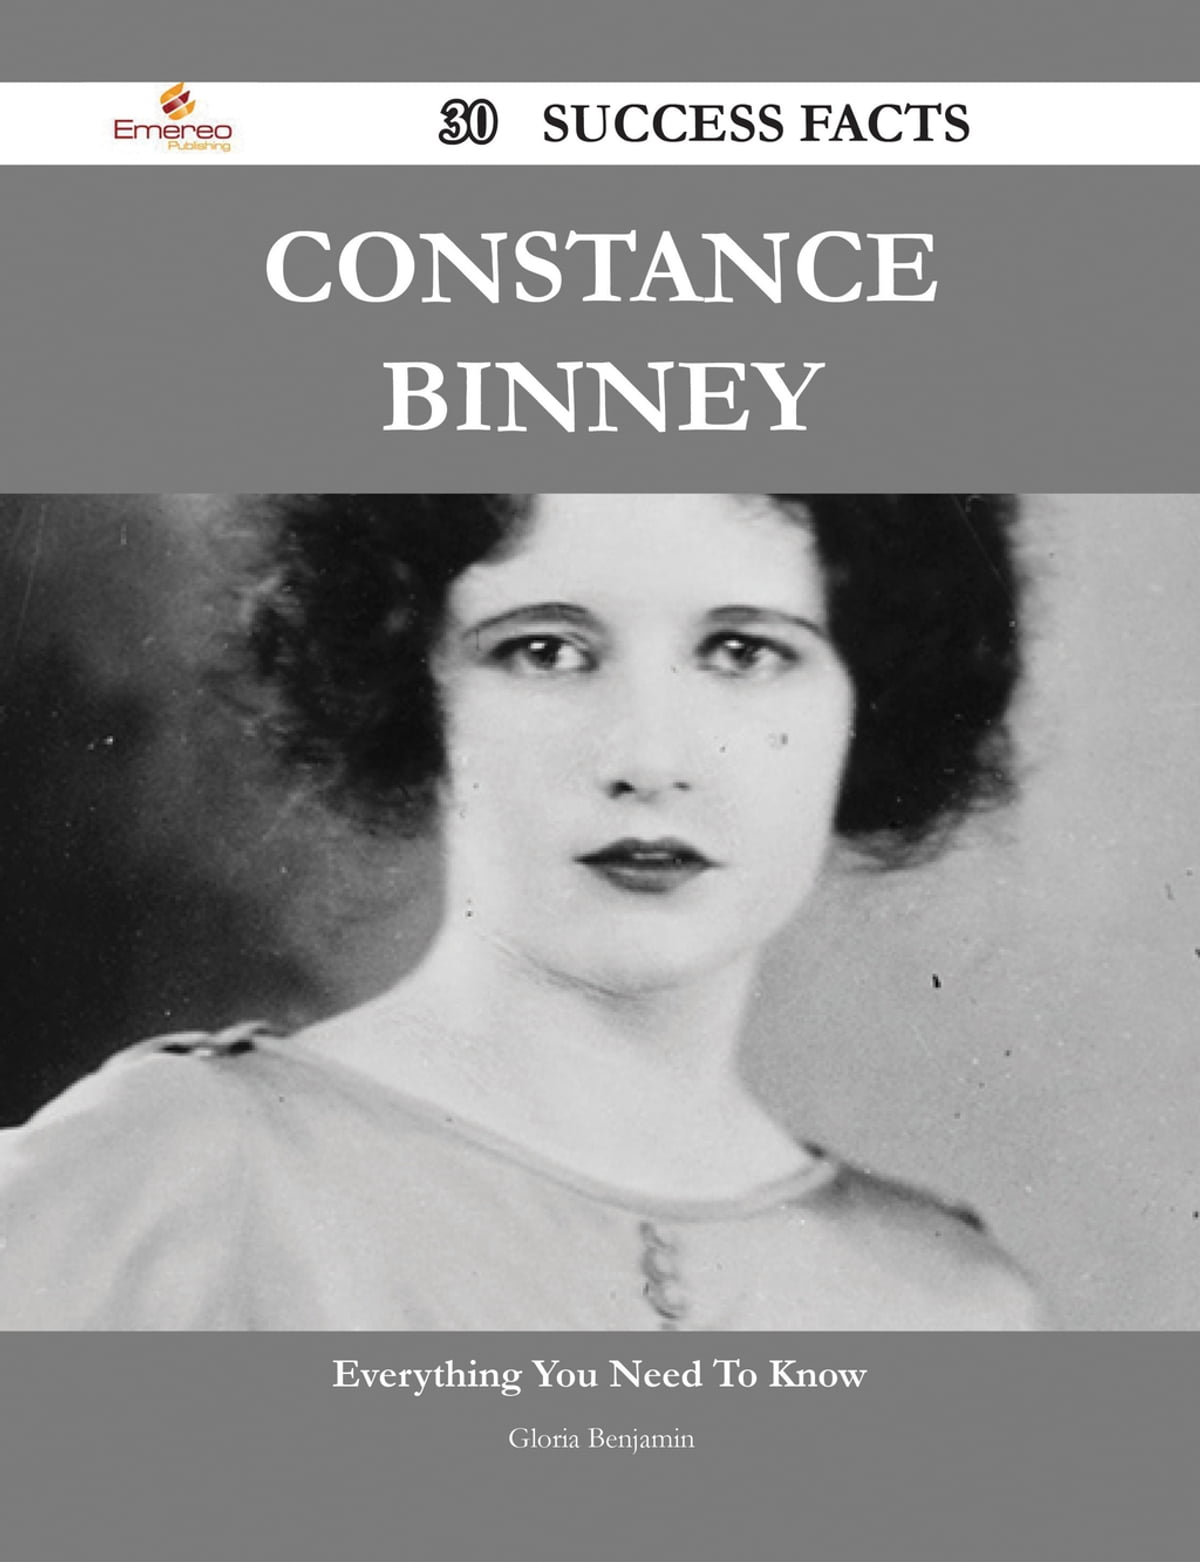 pictures Constance Binney